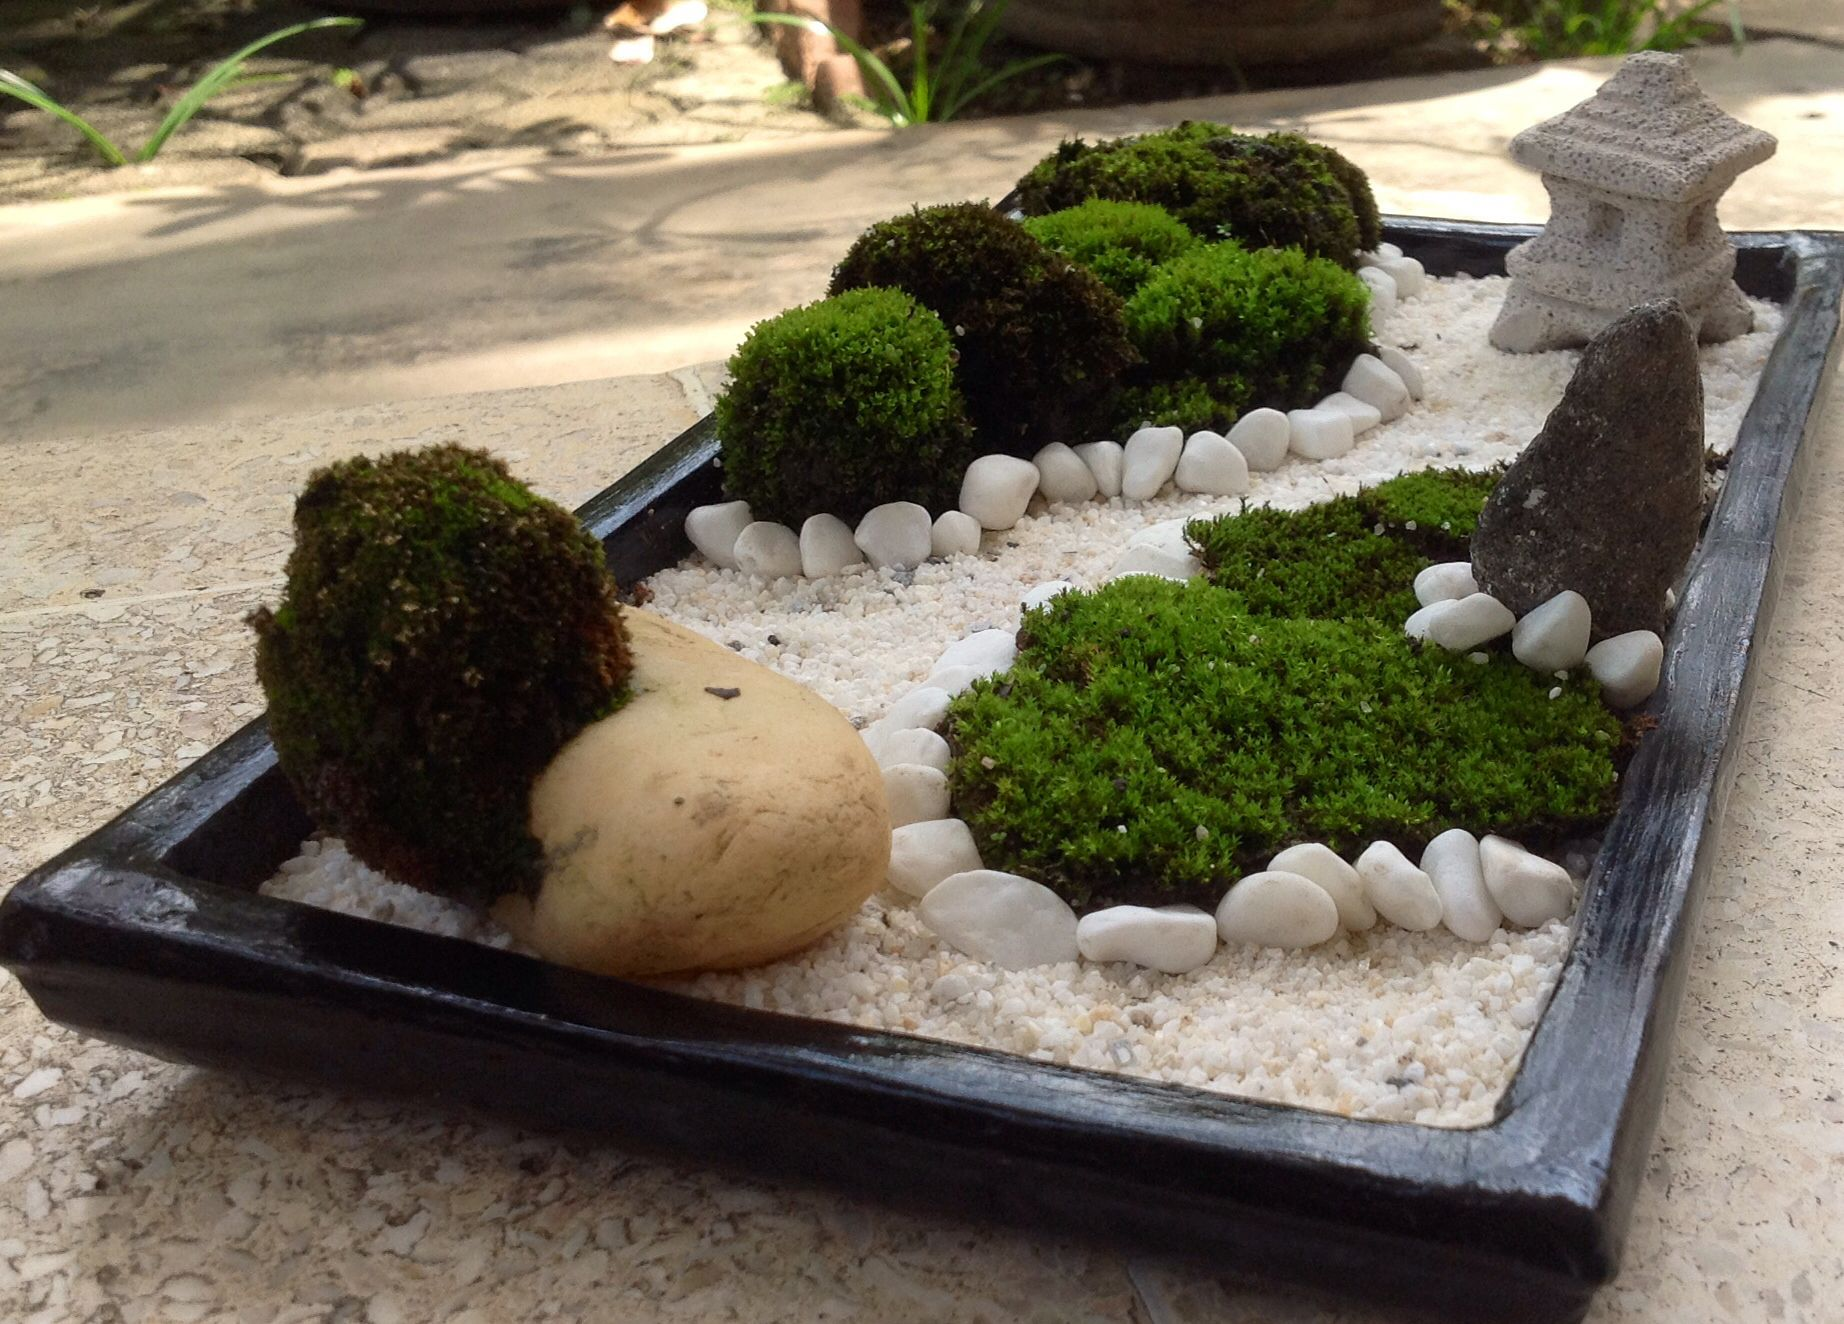 mini zen garden ii mini zen gardens pinterest mini zen garden zen gardens and zen. Black Bedroom Furniture Sets. Home Design Ideas